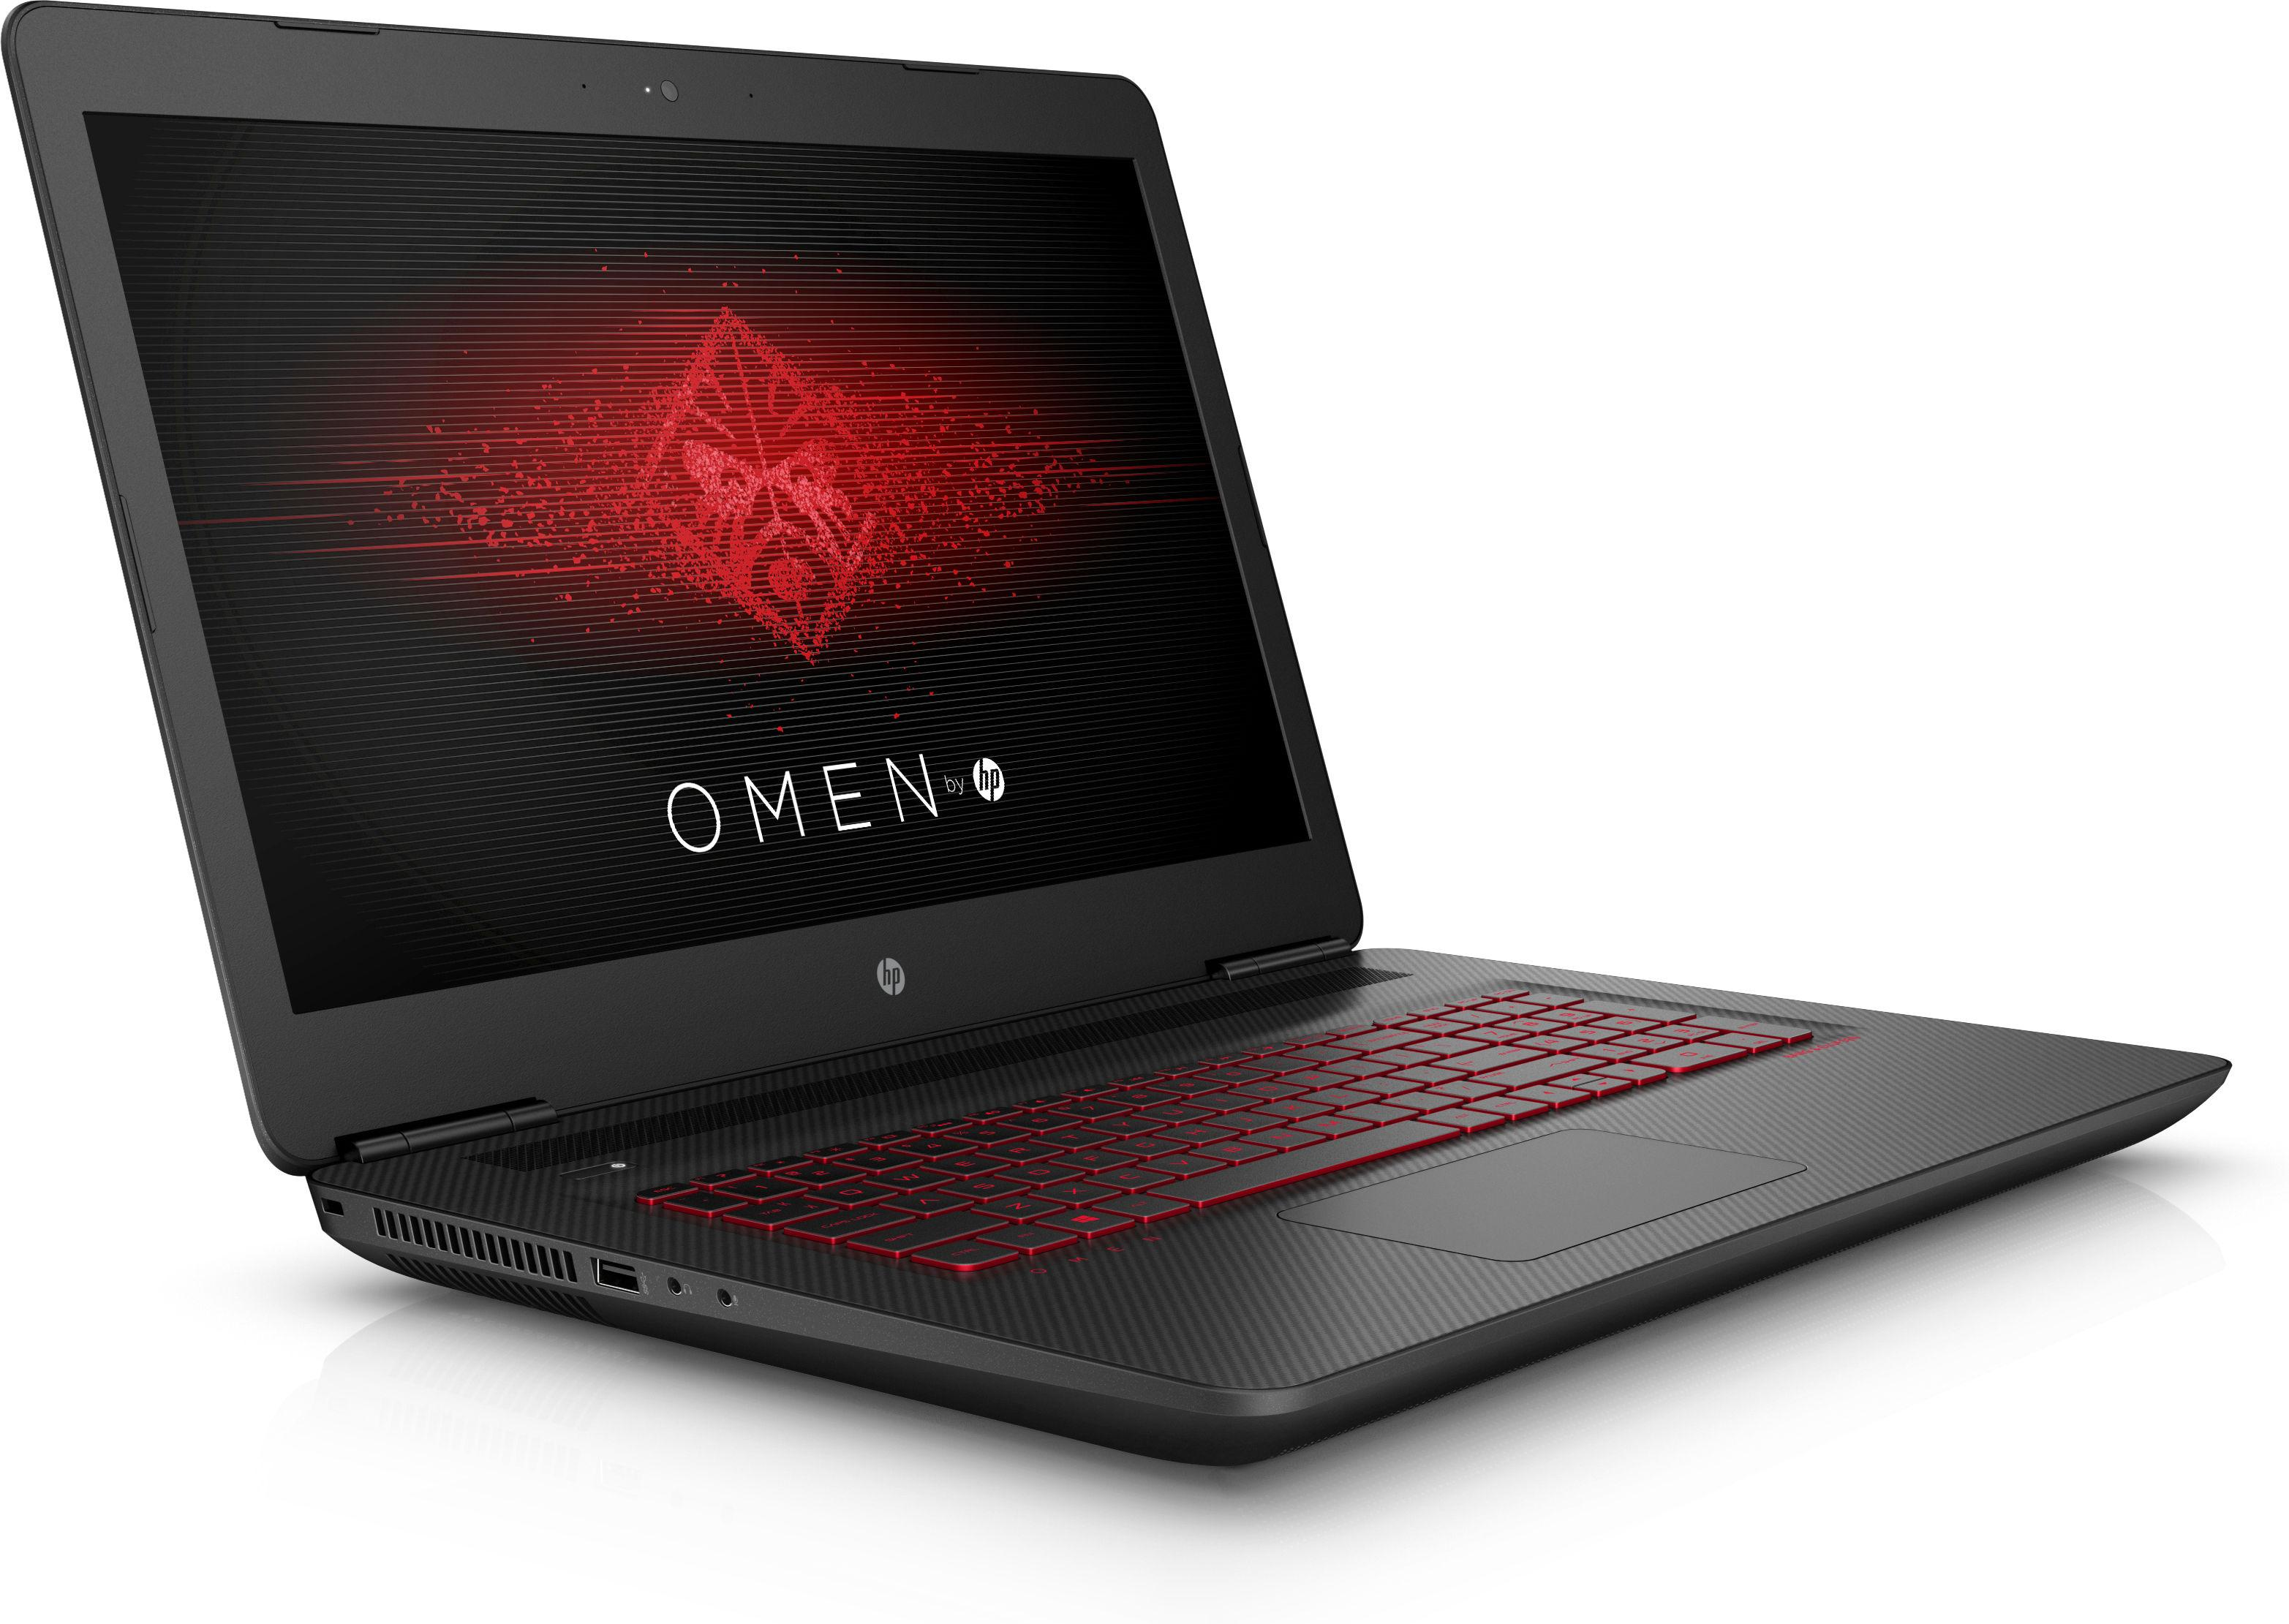 Hp omen 17 w209ng notebook i5 gtx1060 6gb ssd 8gb ram for Portent vs omen